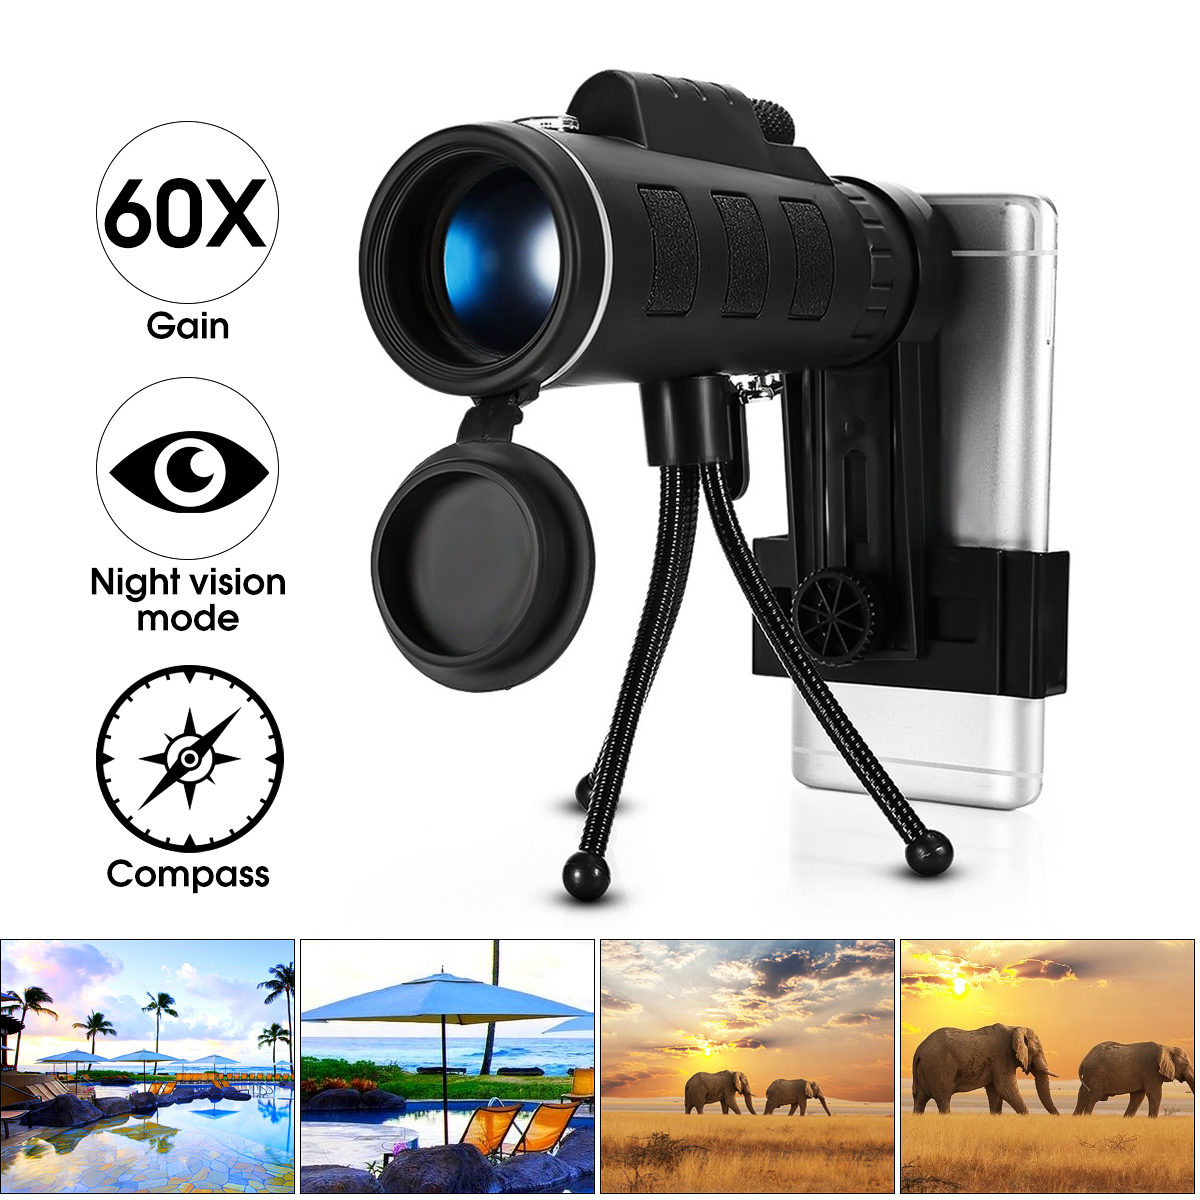 40X60 High Power Compact Monocular Telescope HD Dual Focus Scope With Cell Phone Holder +Tripod Mount, Waterproof Low Night Vision Remote Controls for Hunting Camping Traveling